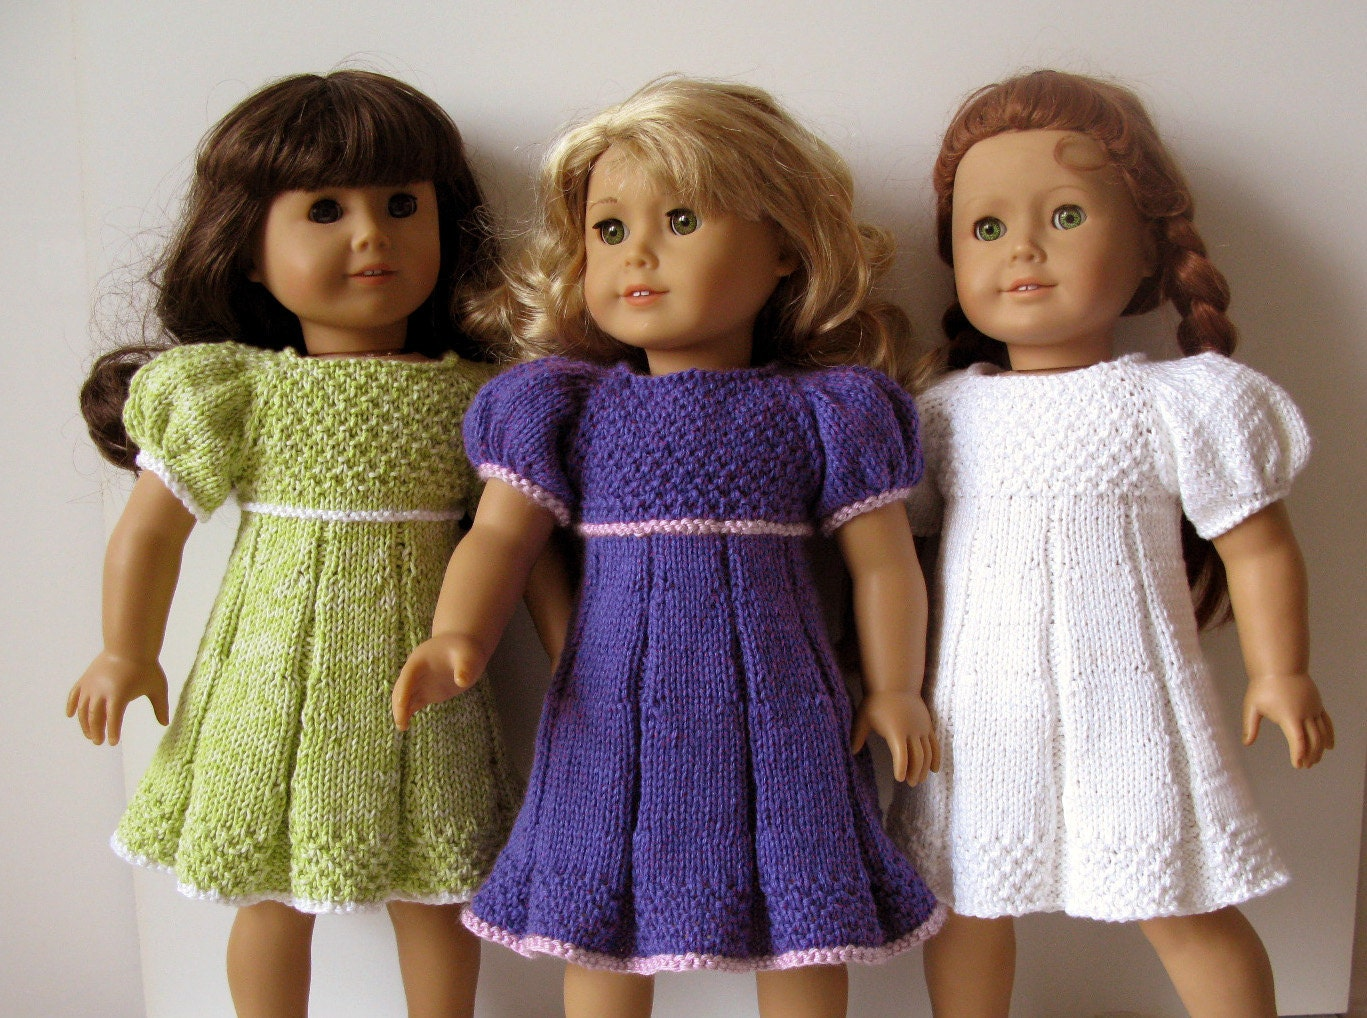 16 Knitting Patterns for American Girl Dolls - The Funky Stitch